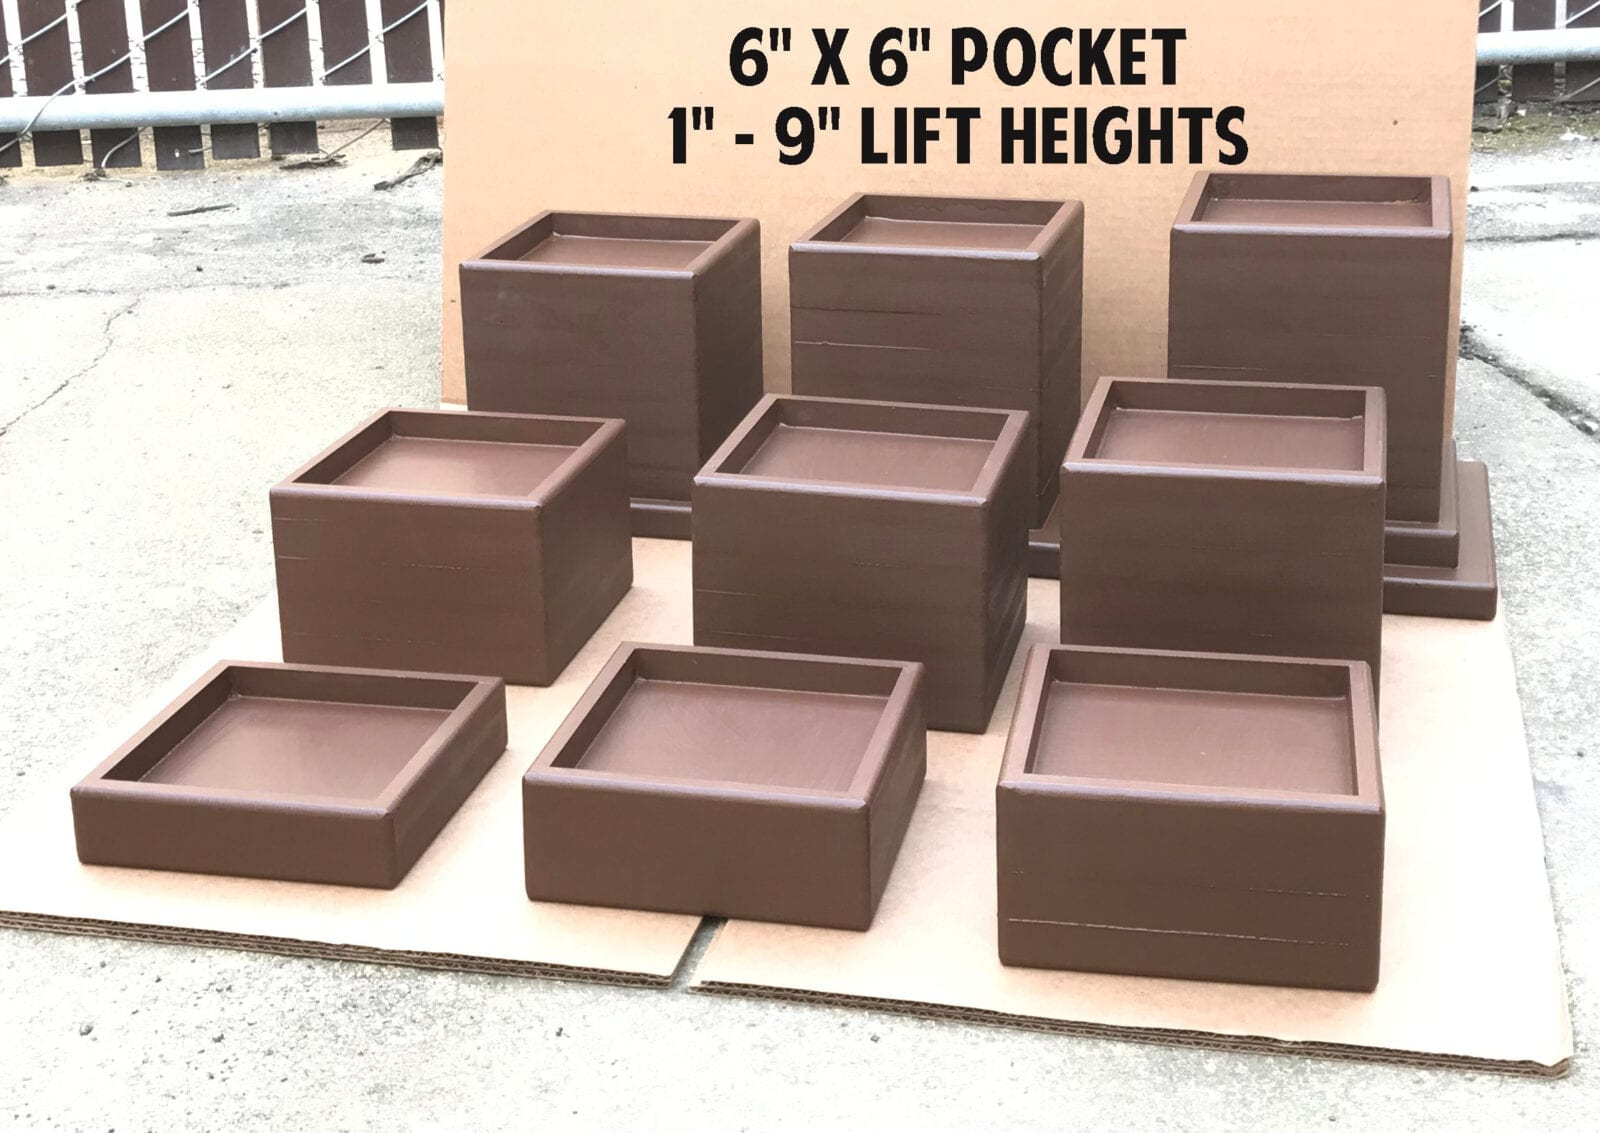 "6x6 Pockets - 1"" to 9"" Lift Heights"